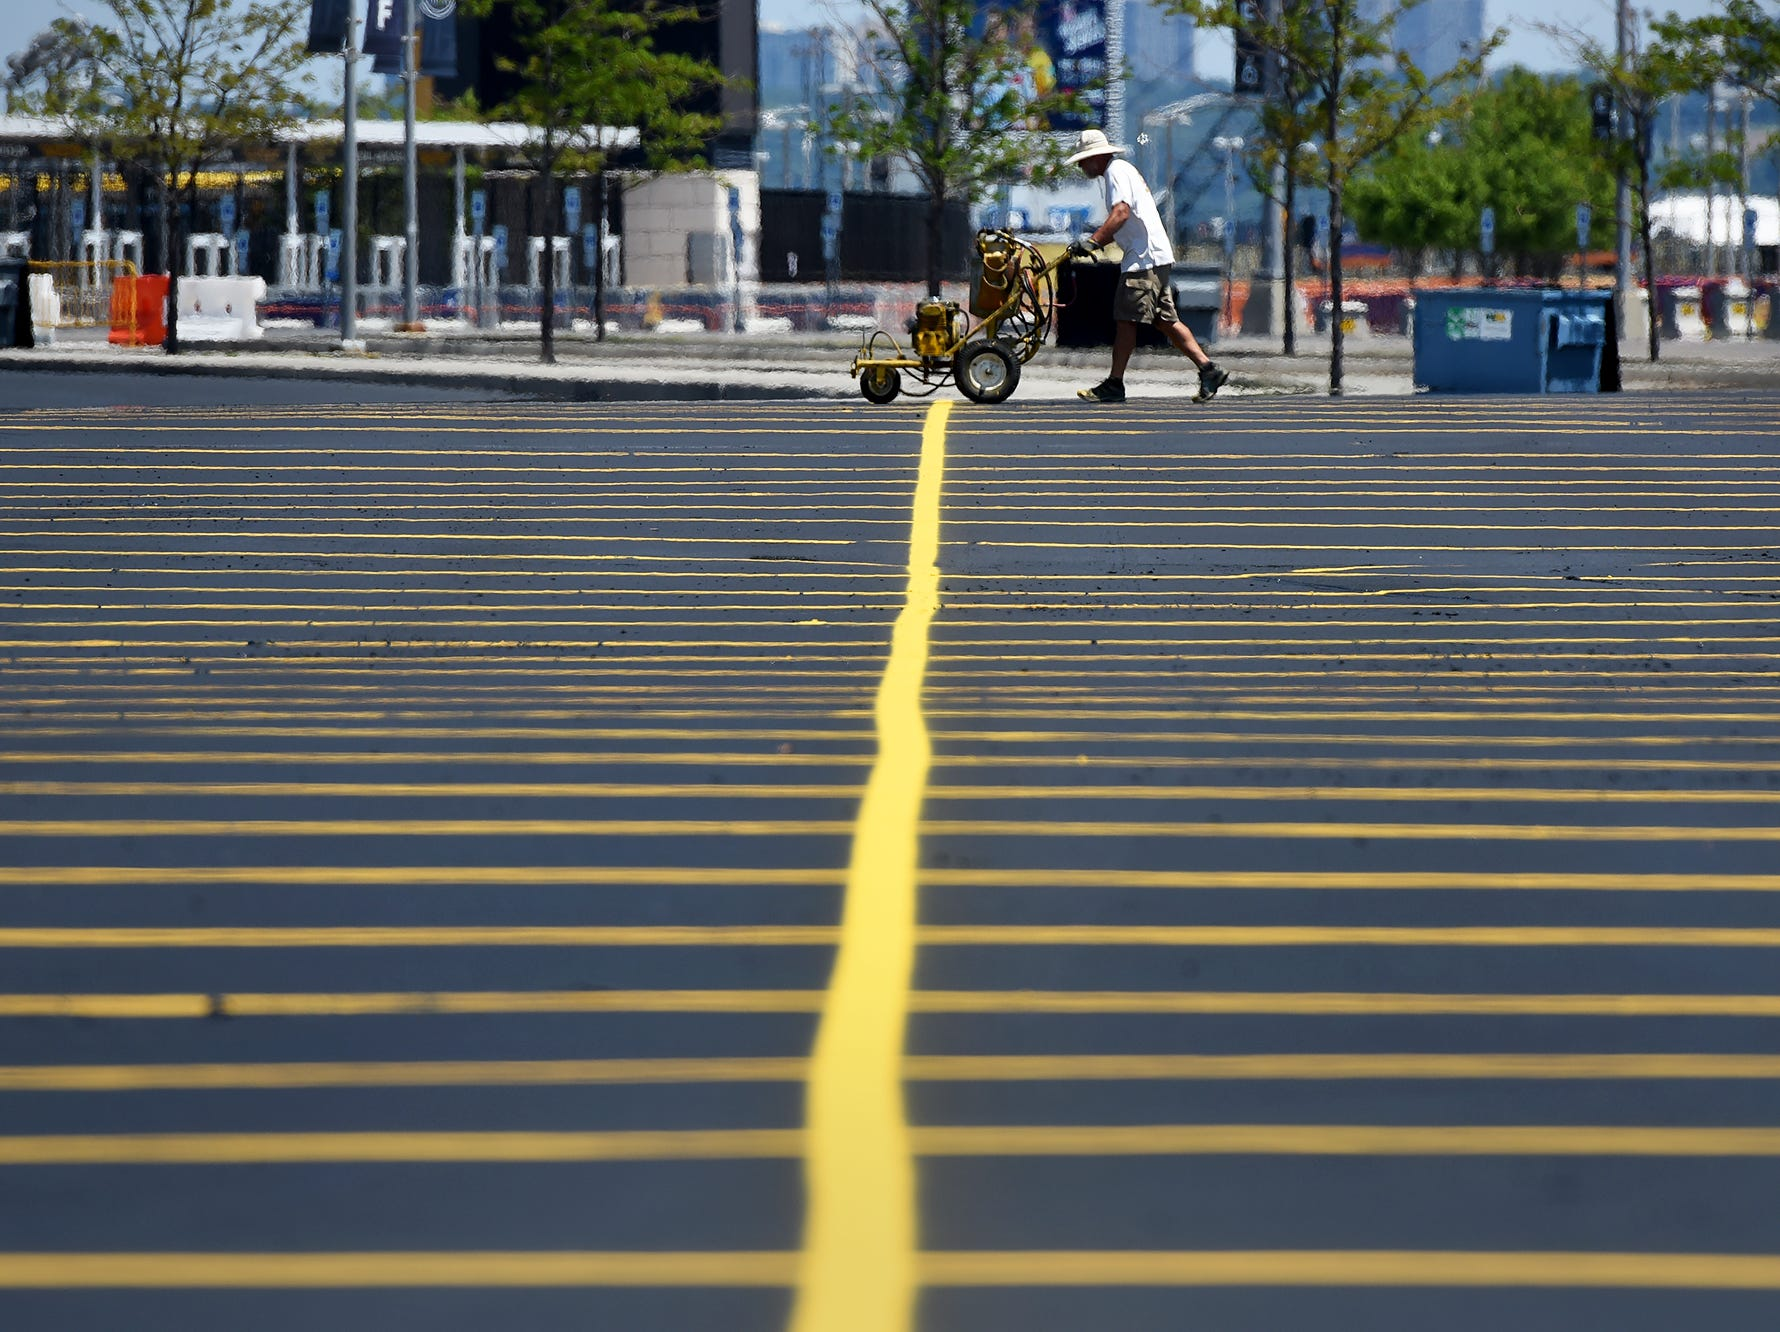 Steam rises off the pavement while as new lines are painted in the parking lot of MetLife Stadium on Wednesday, July 18, 2018.